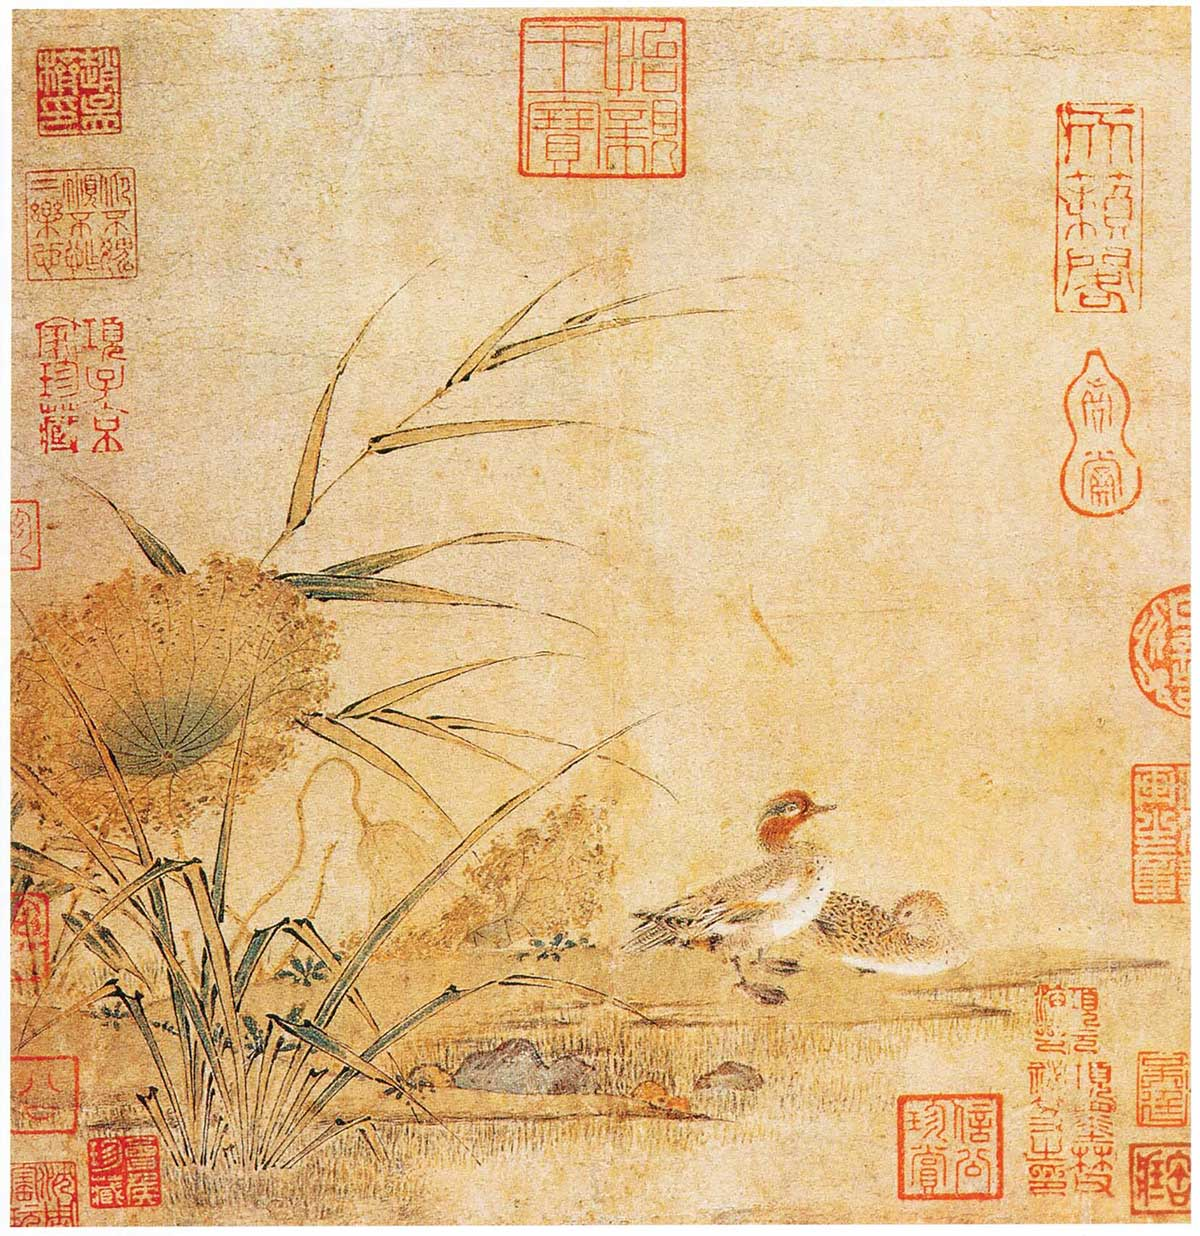 """Song Dynasty painting painted by Hui Chong, called """"Mandarin Ducks on an Autumn Bank."""""""